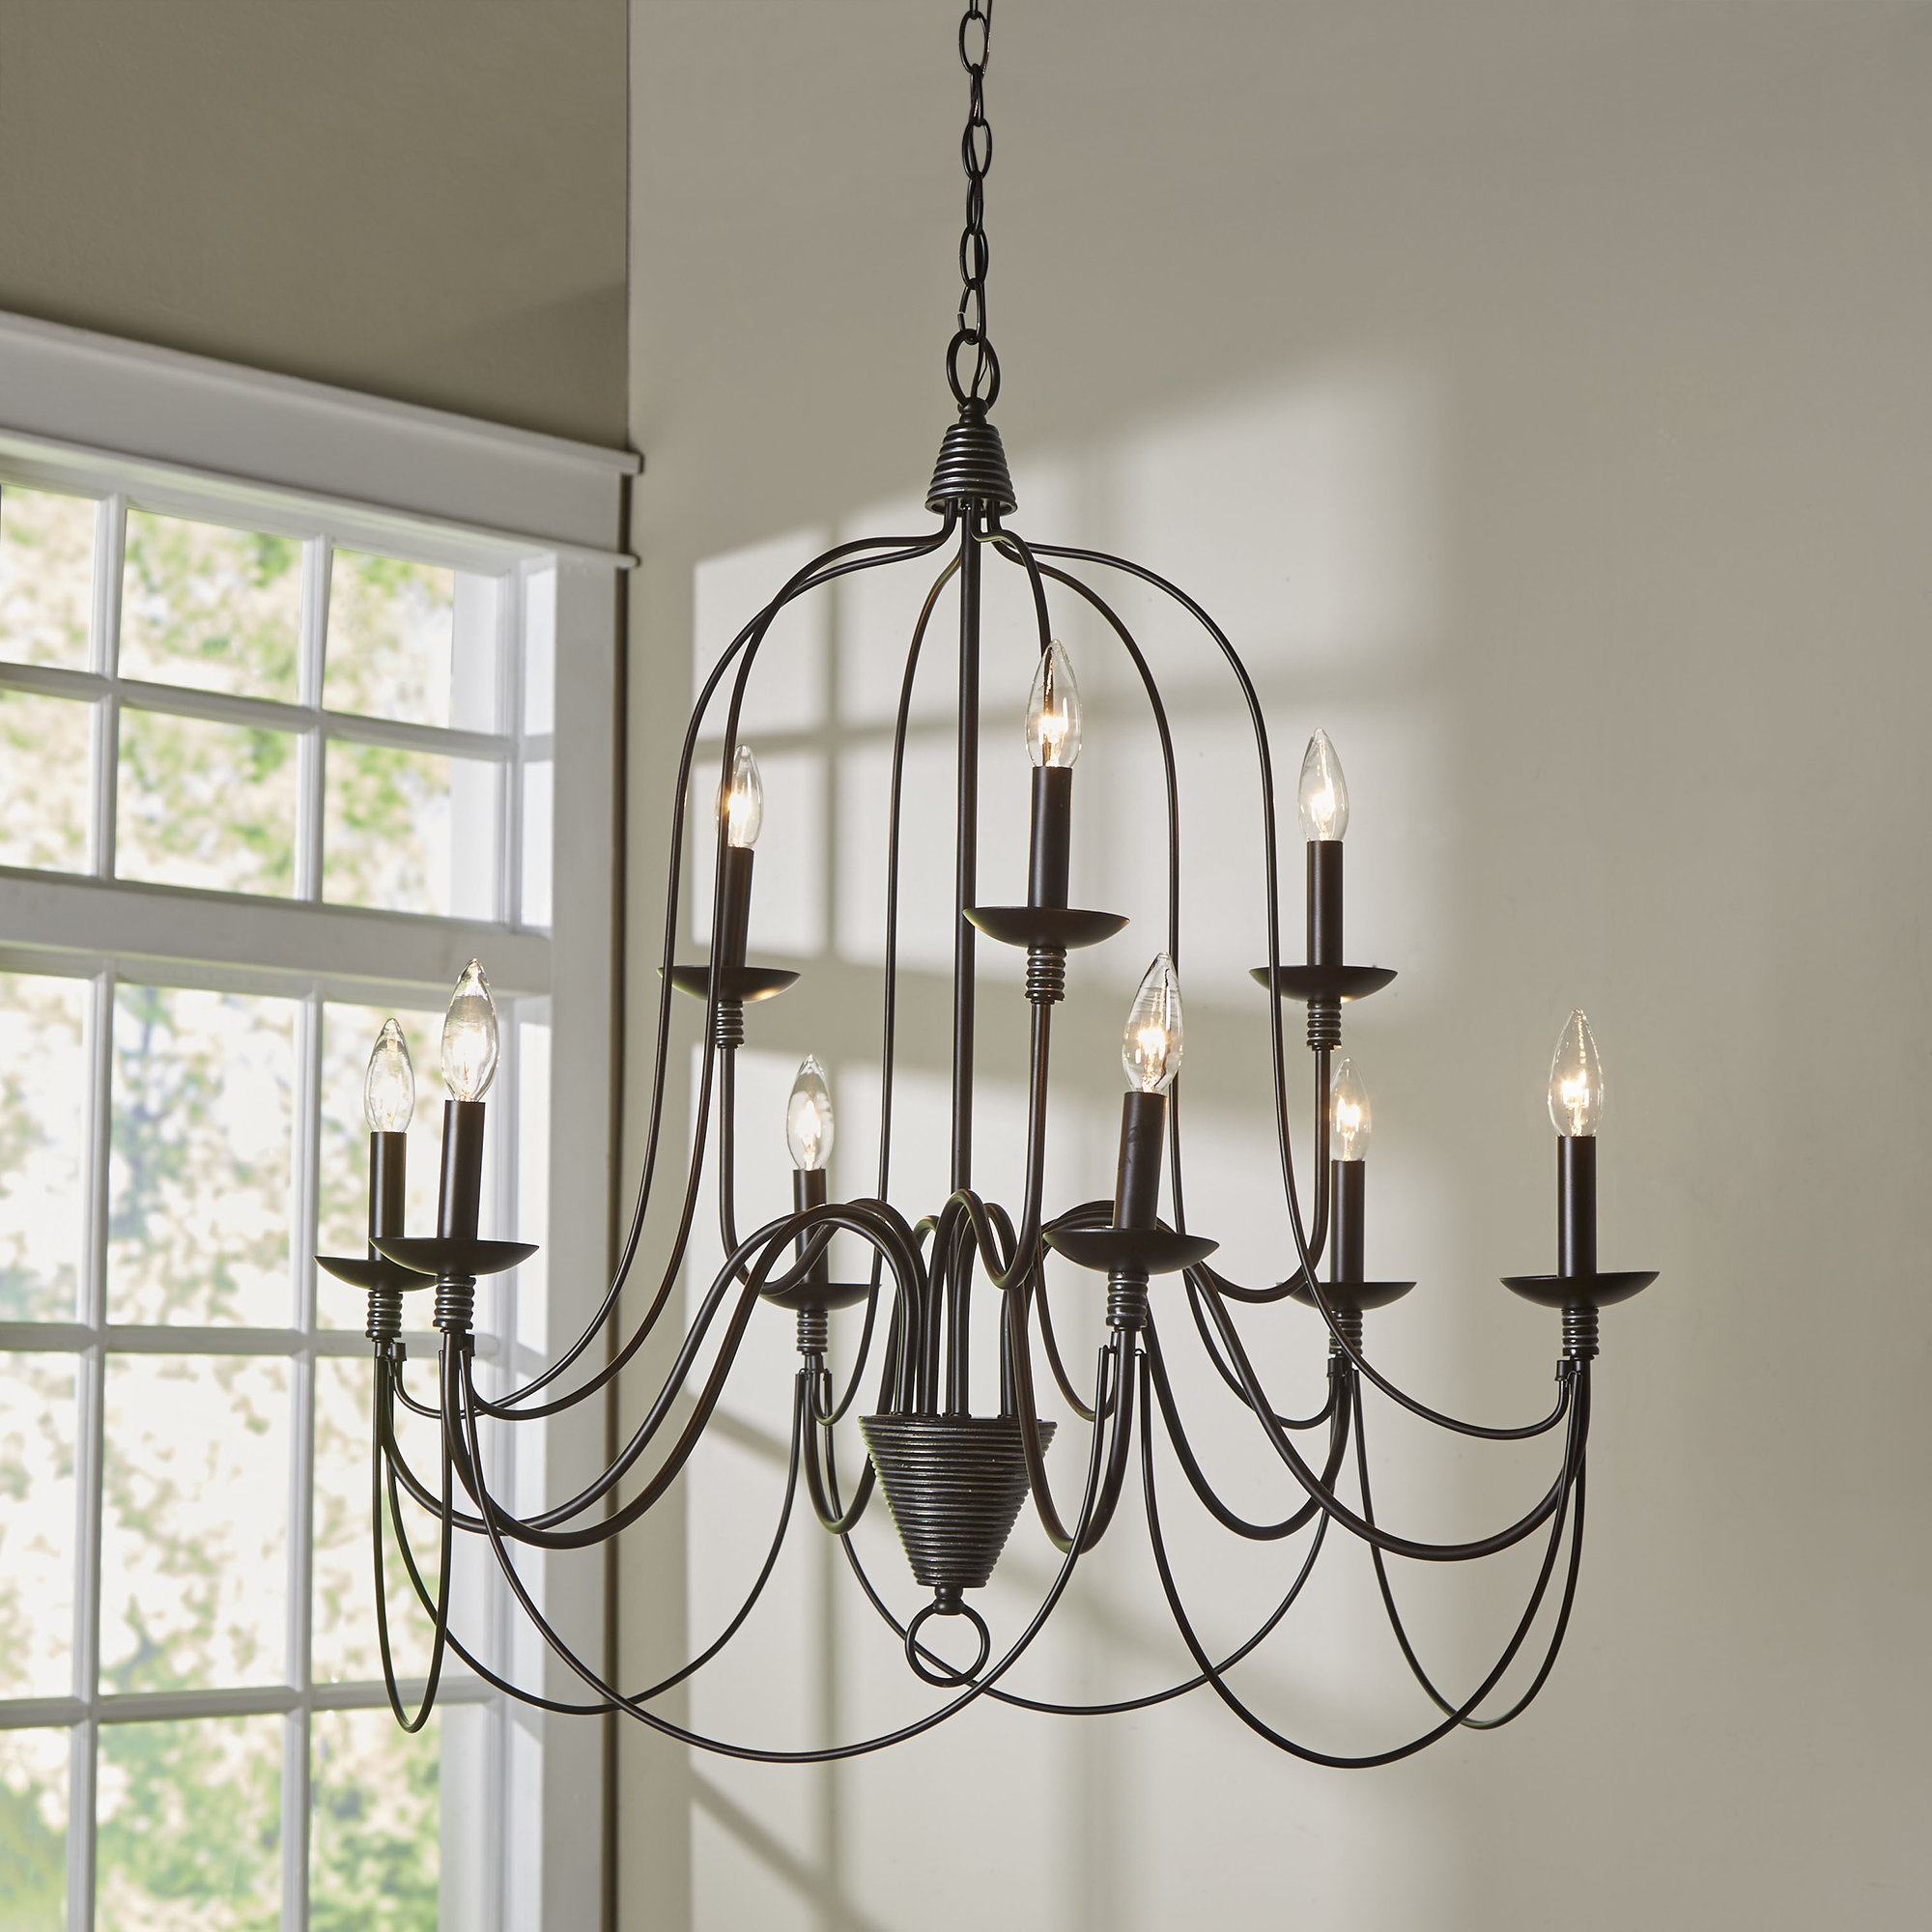 Three Posts Watford 9-Light Candle Style Chandelier in Camilla 9-Light Candle Style Chandeliers (Image 26 of 30)